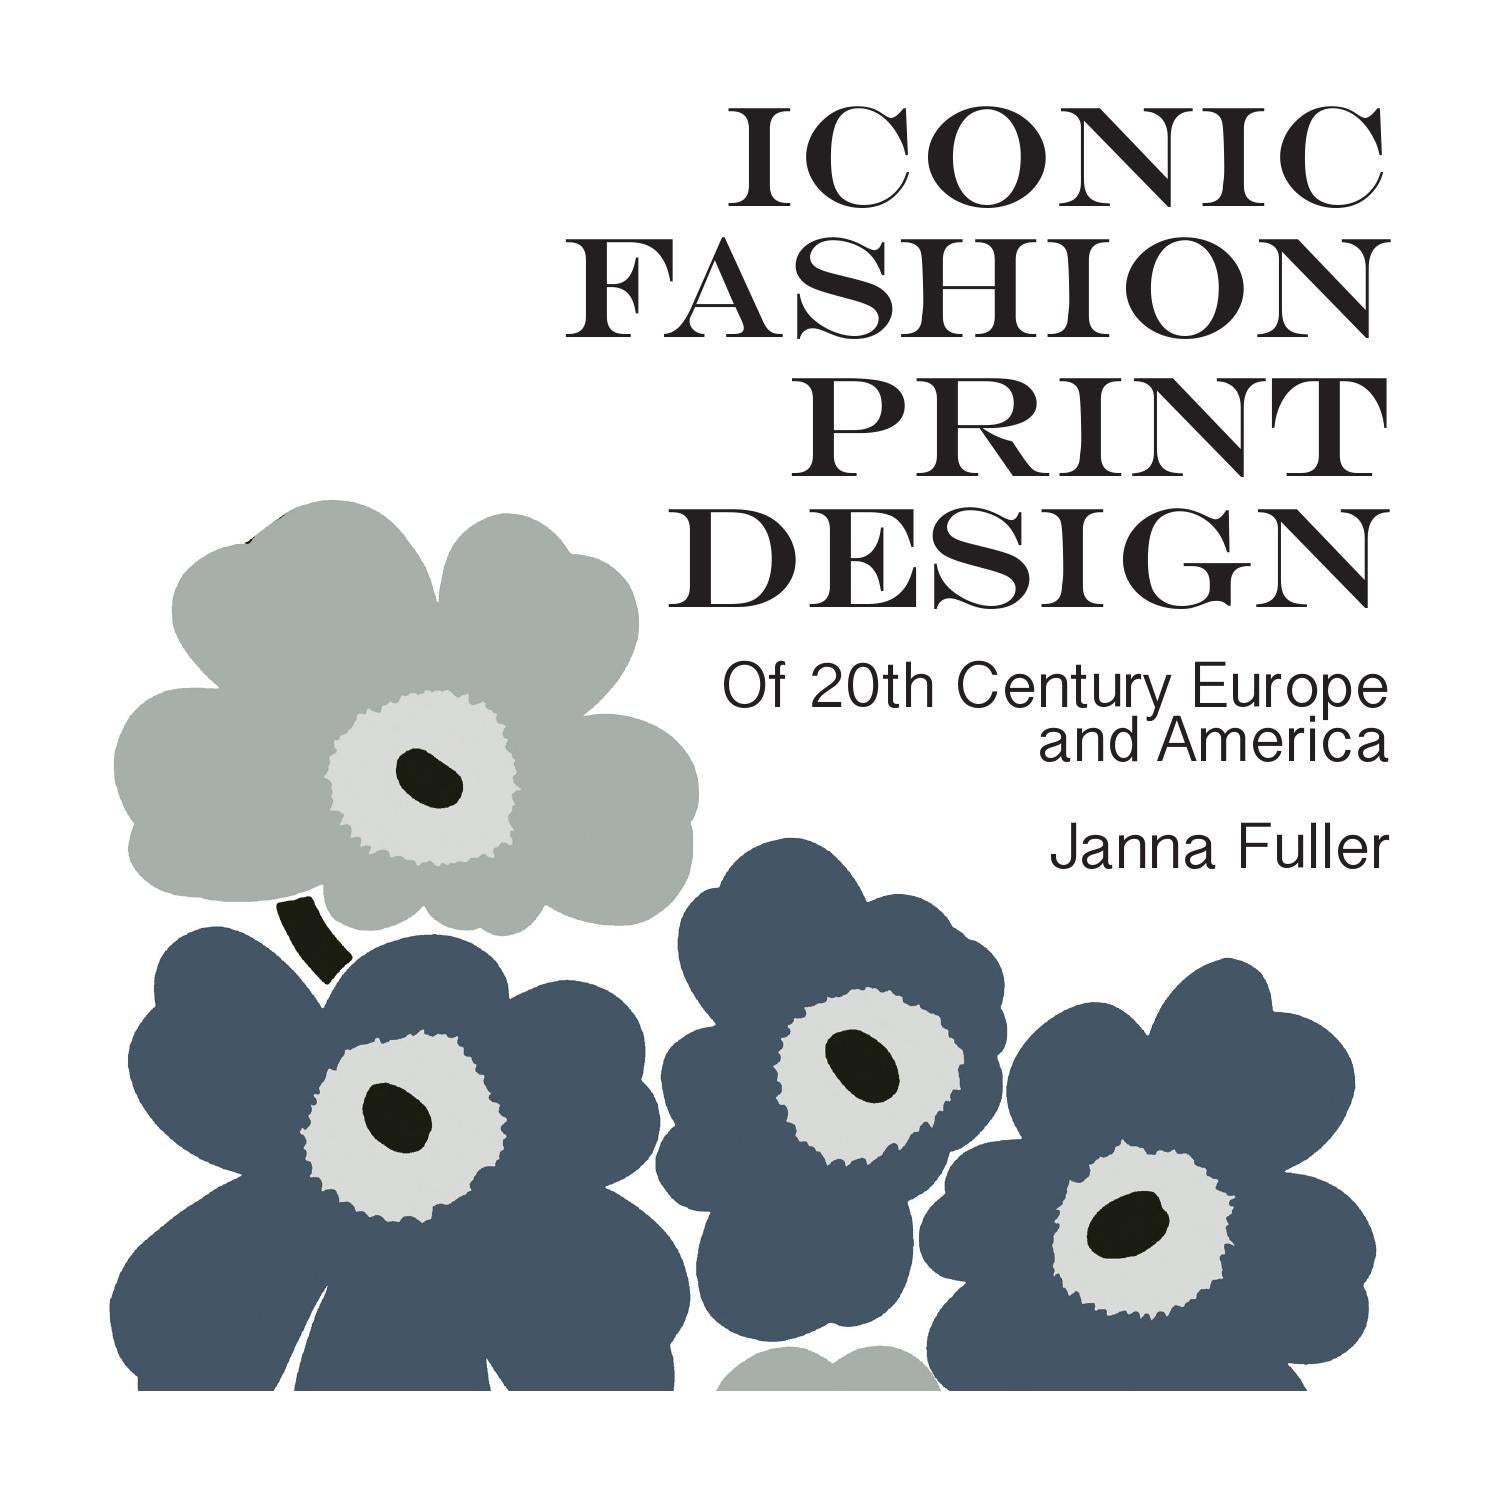 9a76e08d930dda Iconic Fashion Print Design by Janna Fuller - issuu